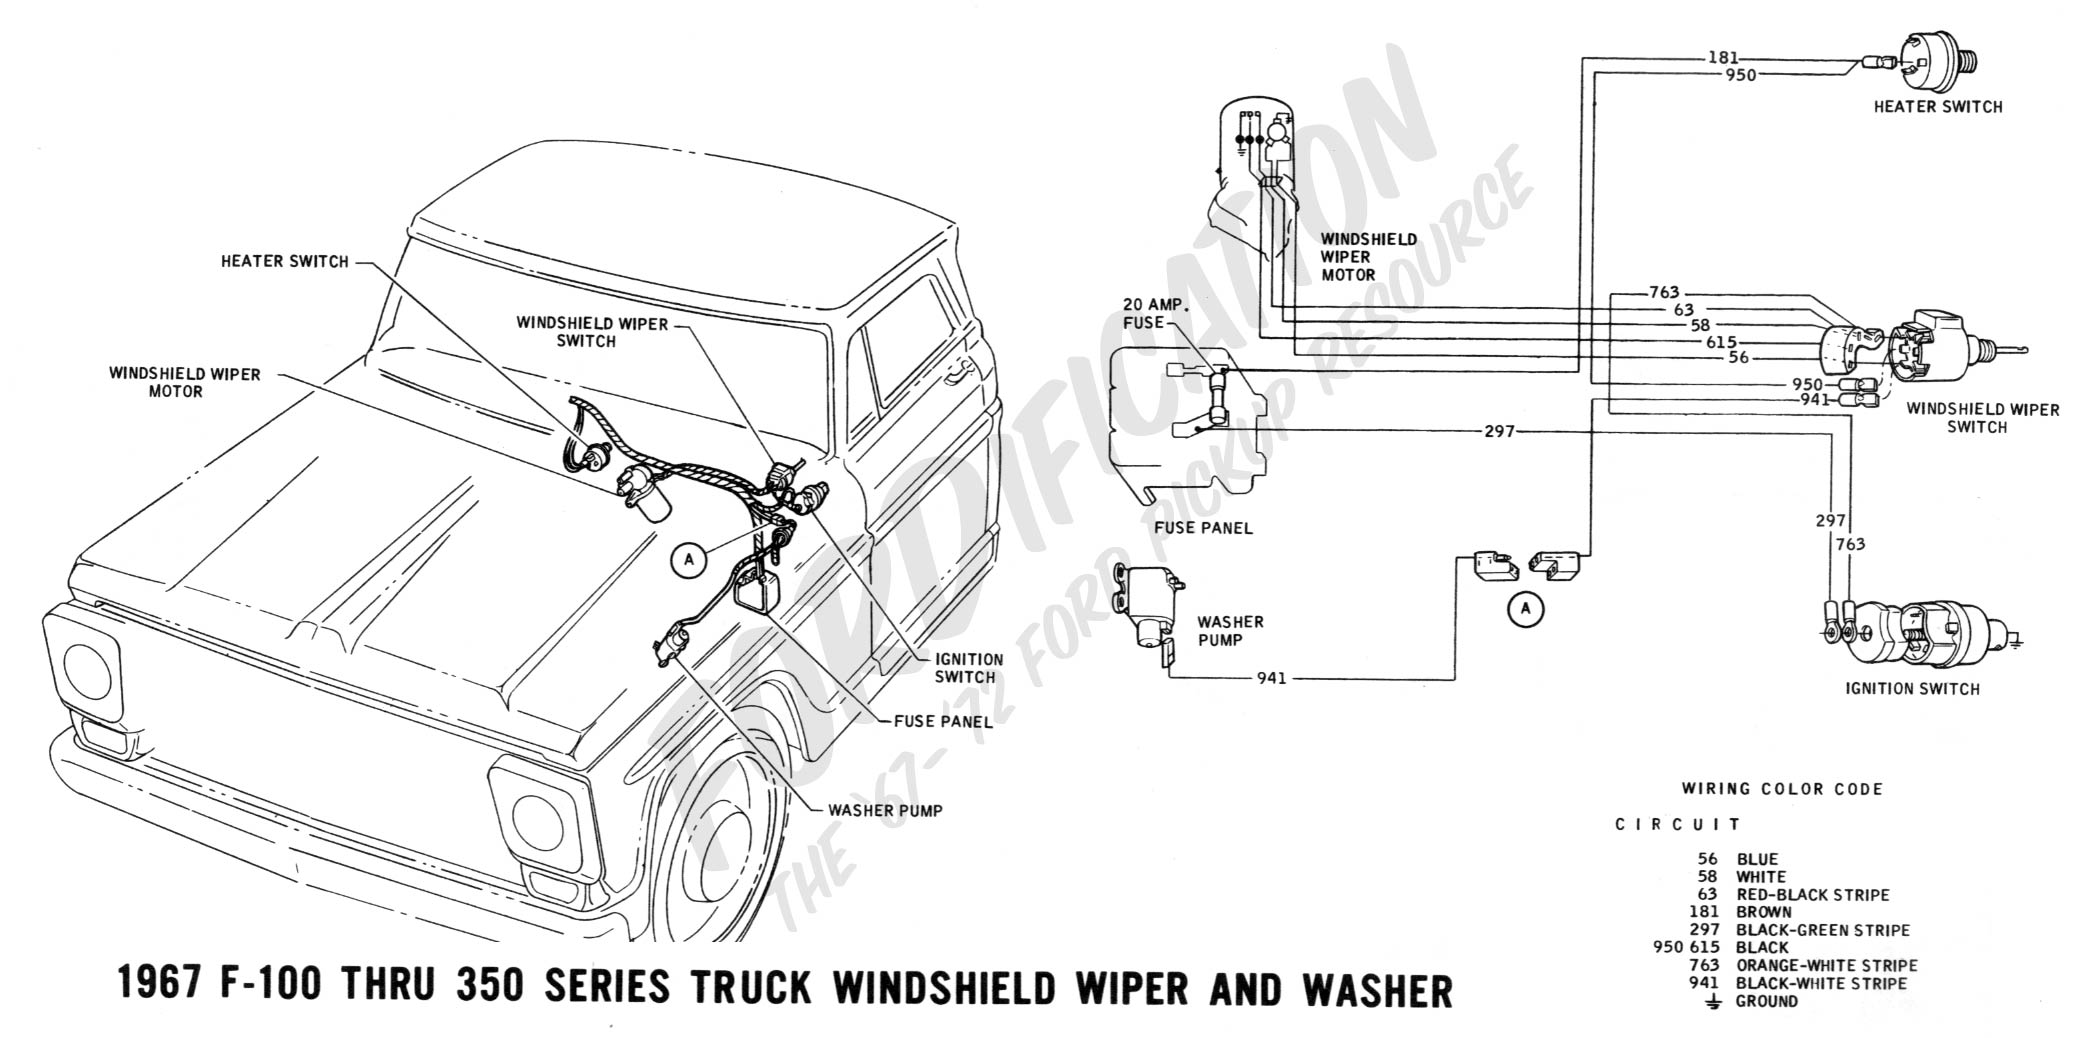 1993 Ford Bronco Fuse Panel Diagram Great Design Of Wiring 1998 Ranger Box Truck Technical Drawings And Schematics Section H Layout 98